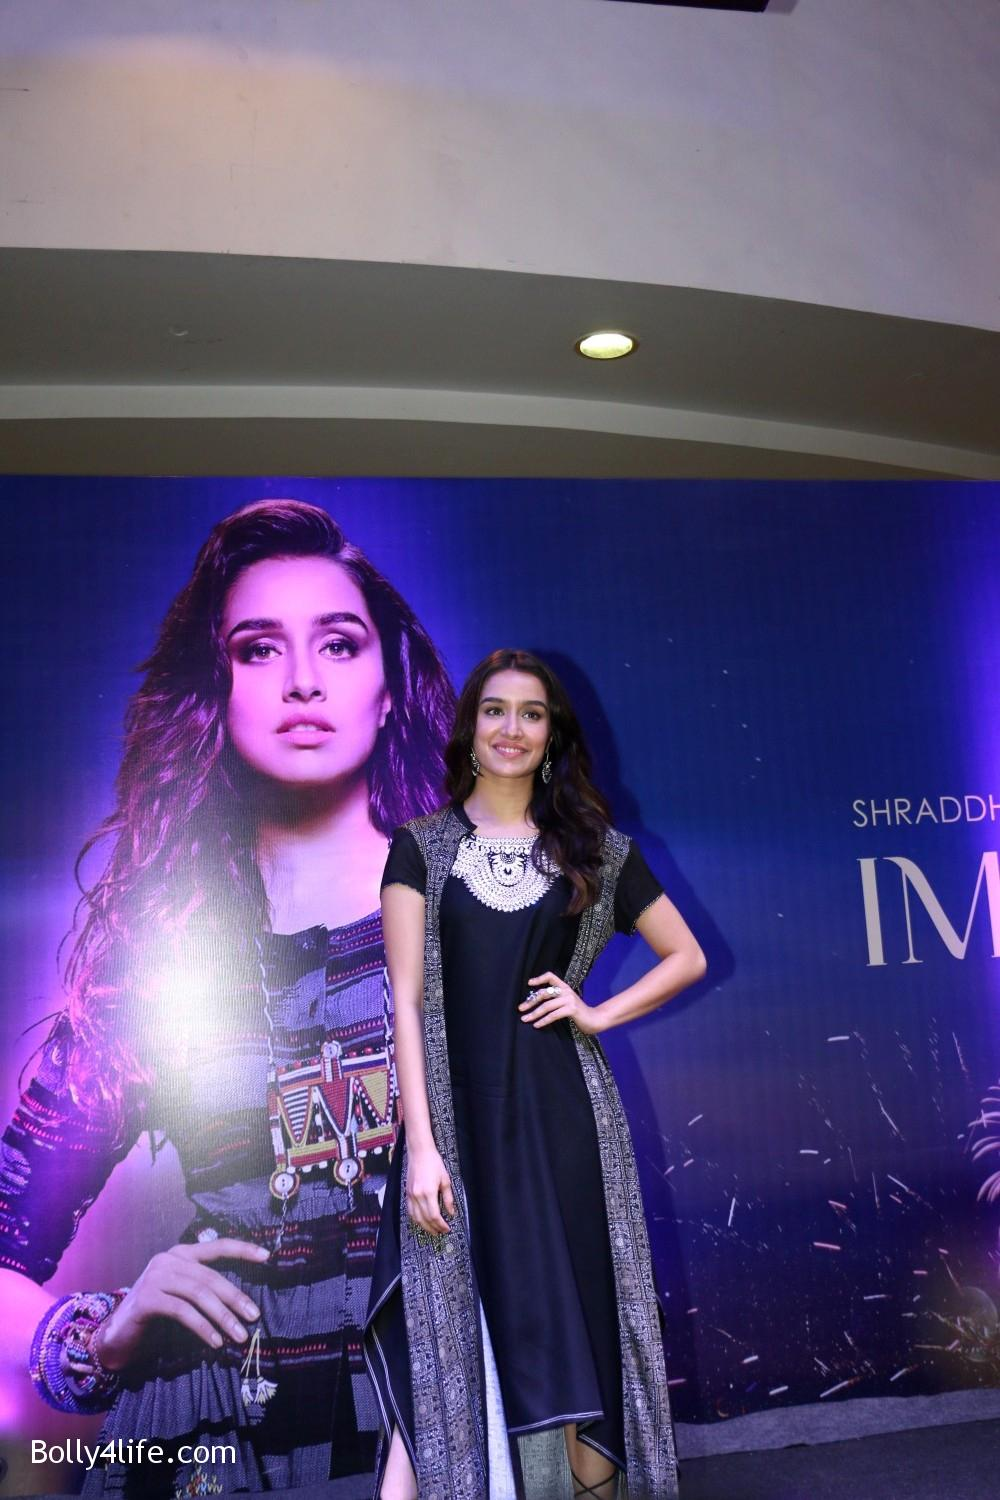 Shraddha-Kapoor-during-the-Enthnic-Wear-store-launch-3.jpg